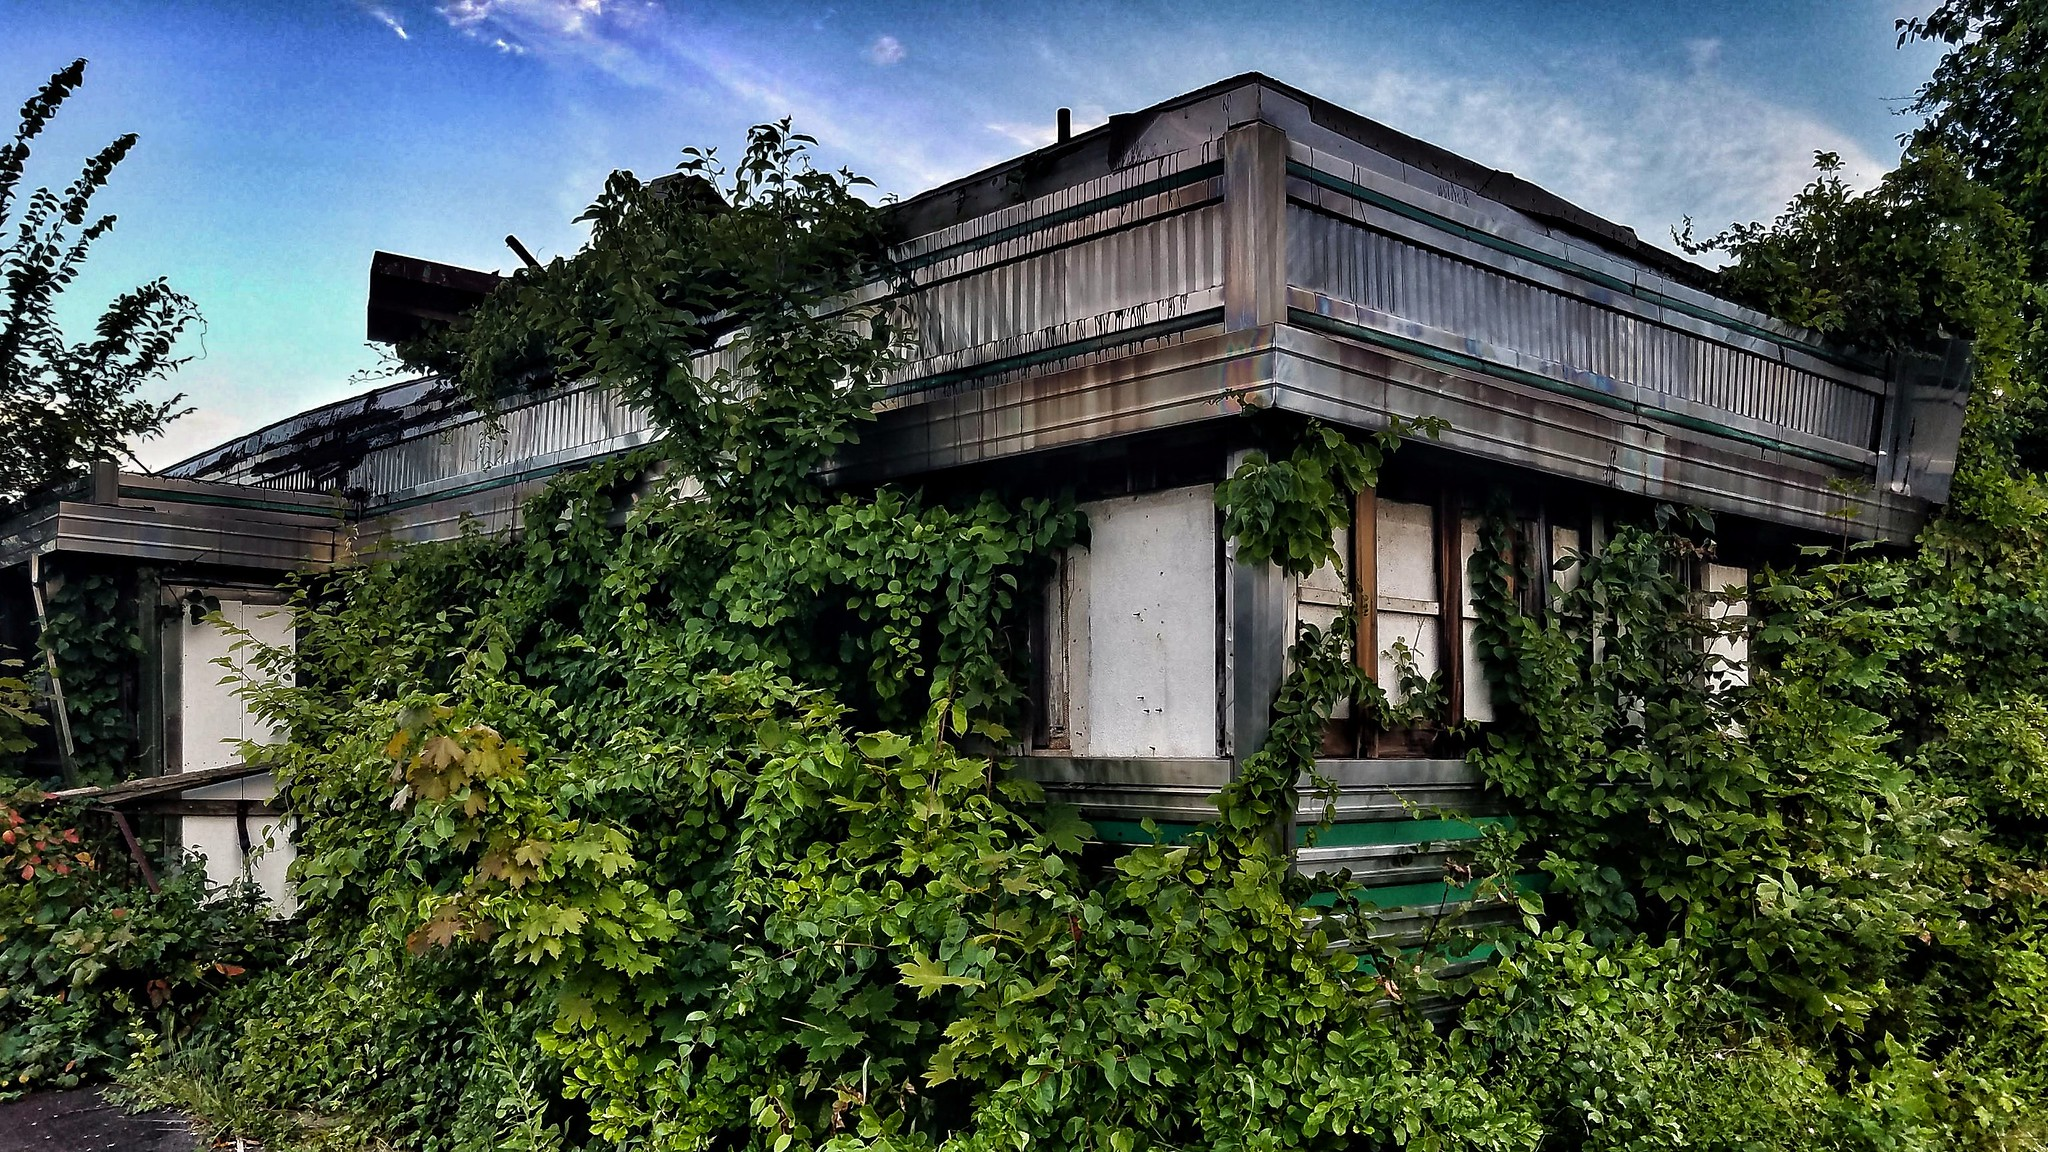 12 Staggering Photos Of Abandoned Places Hiding In New Jersey